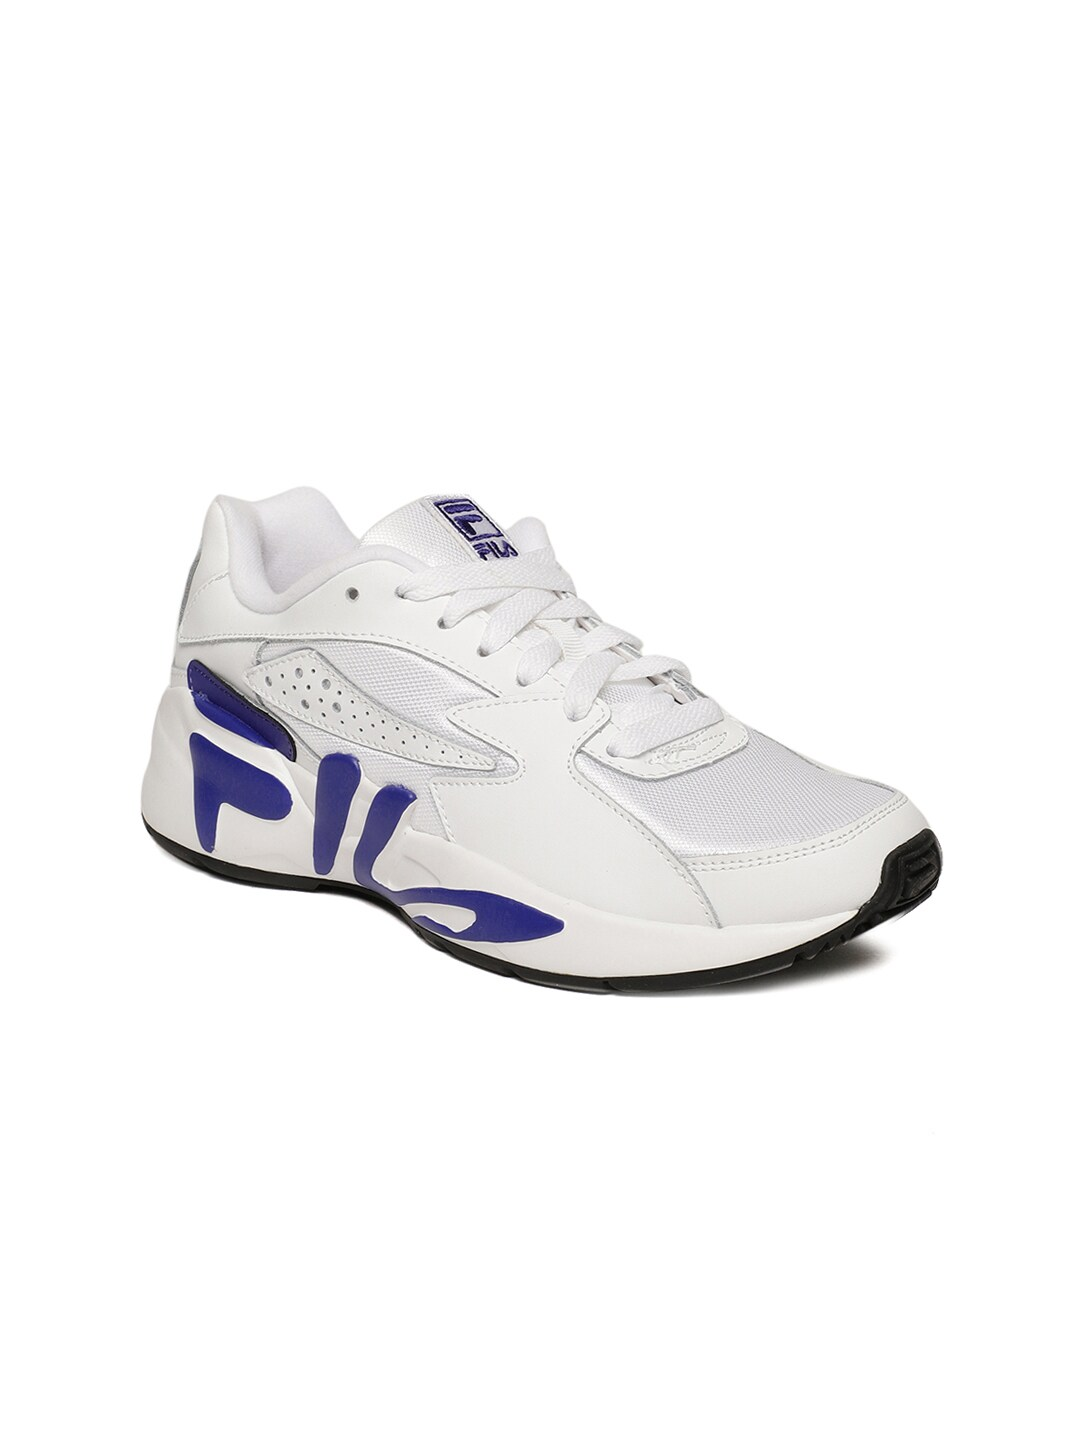 Fila Casual Shoes  2281bba86